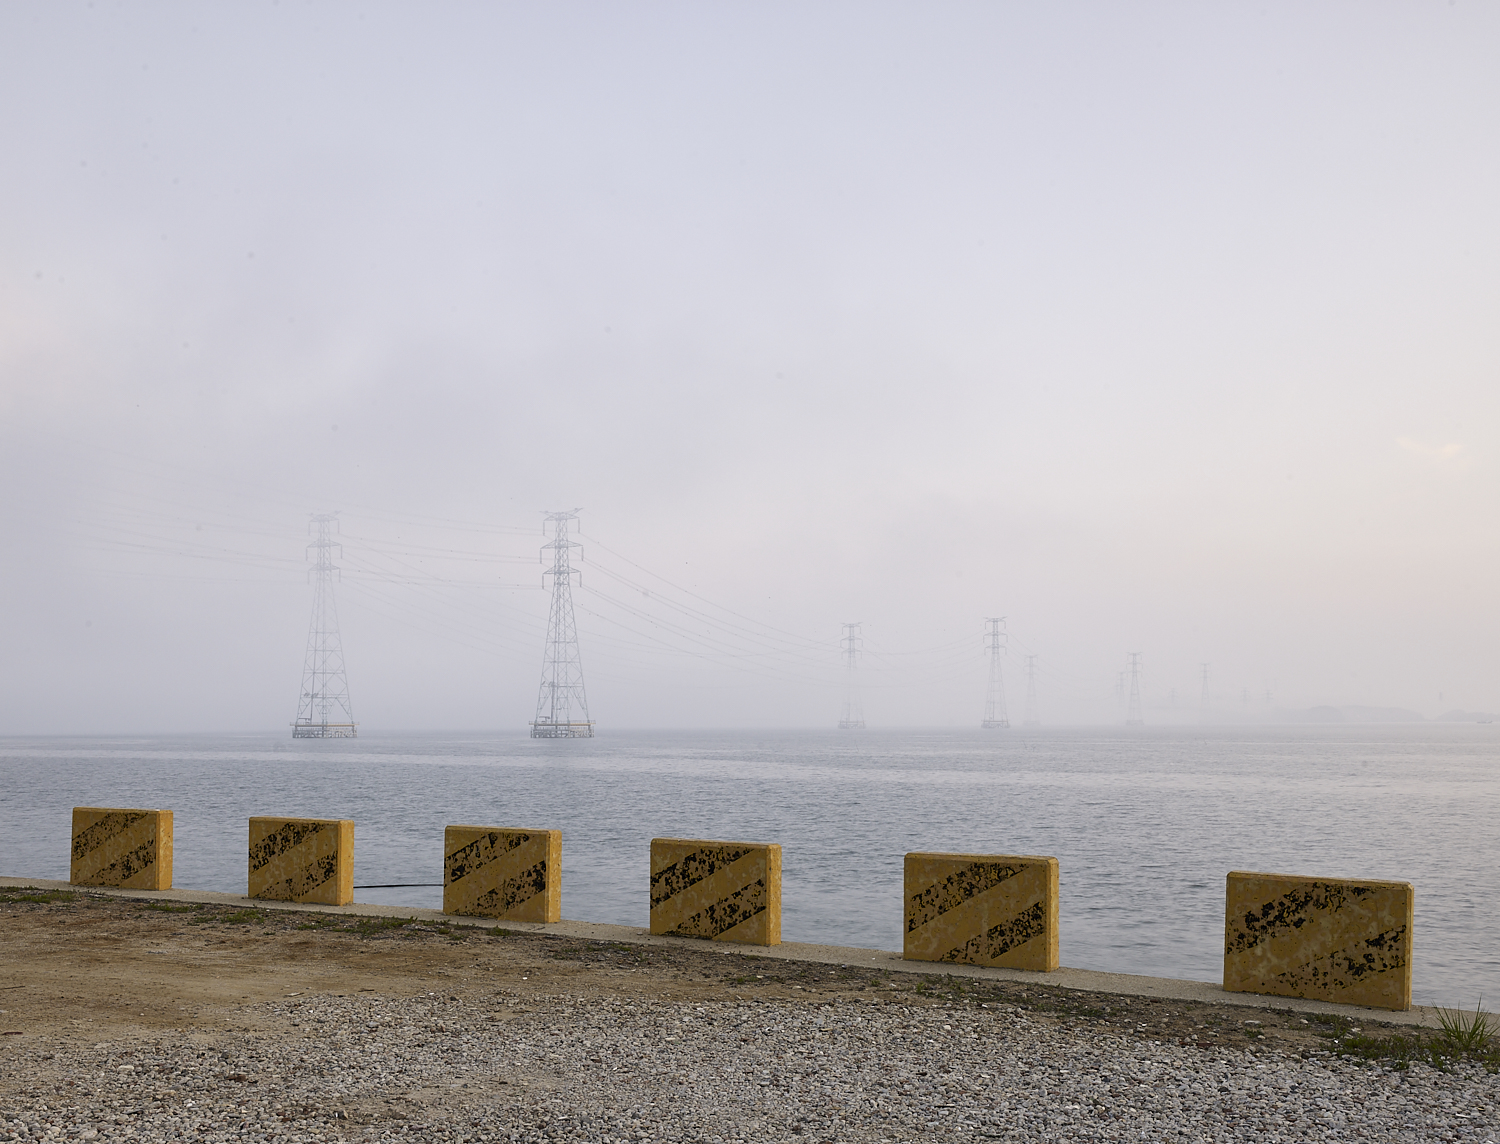 Power lines, The Yellow Sea, Danwon-gu, South Korea, 2016